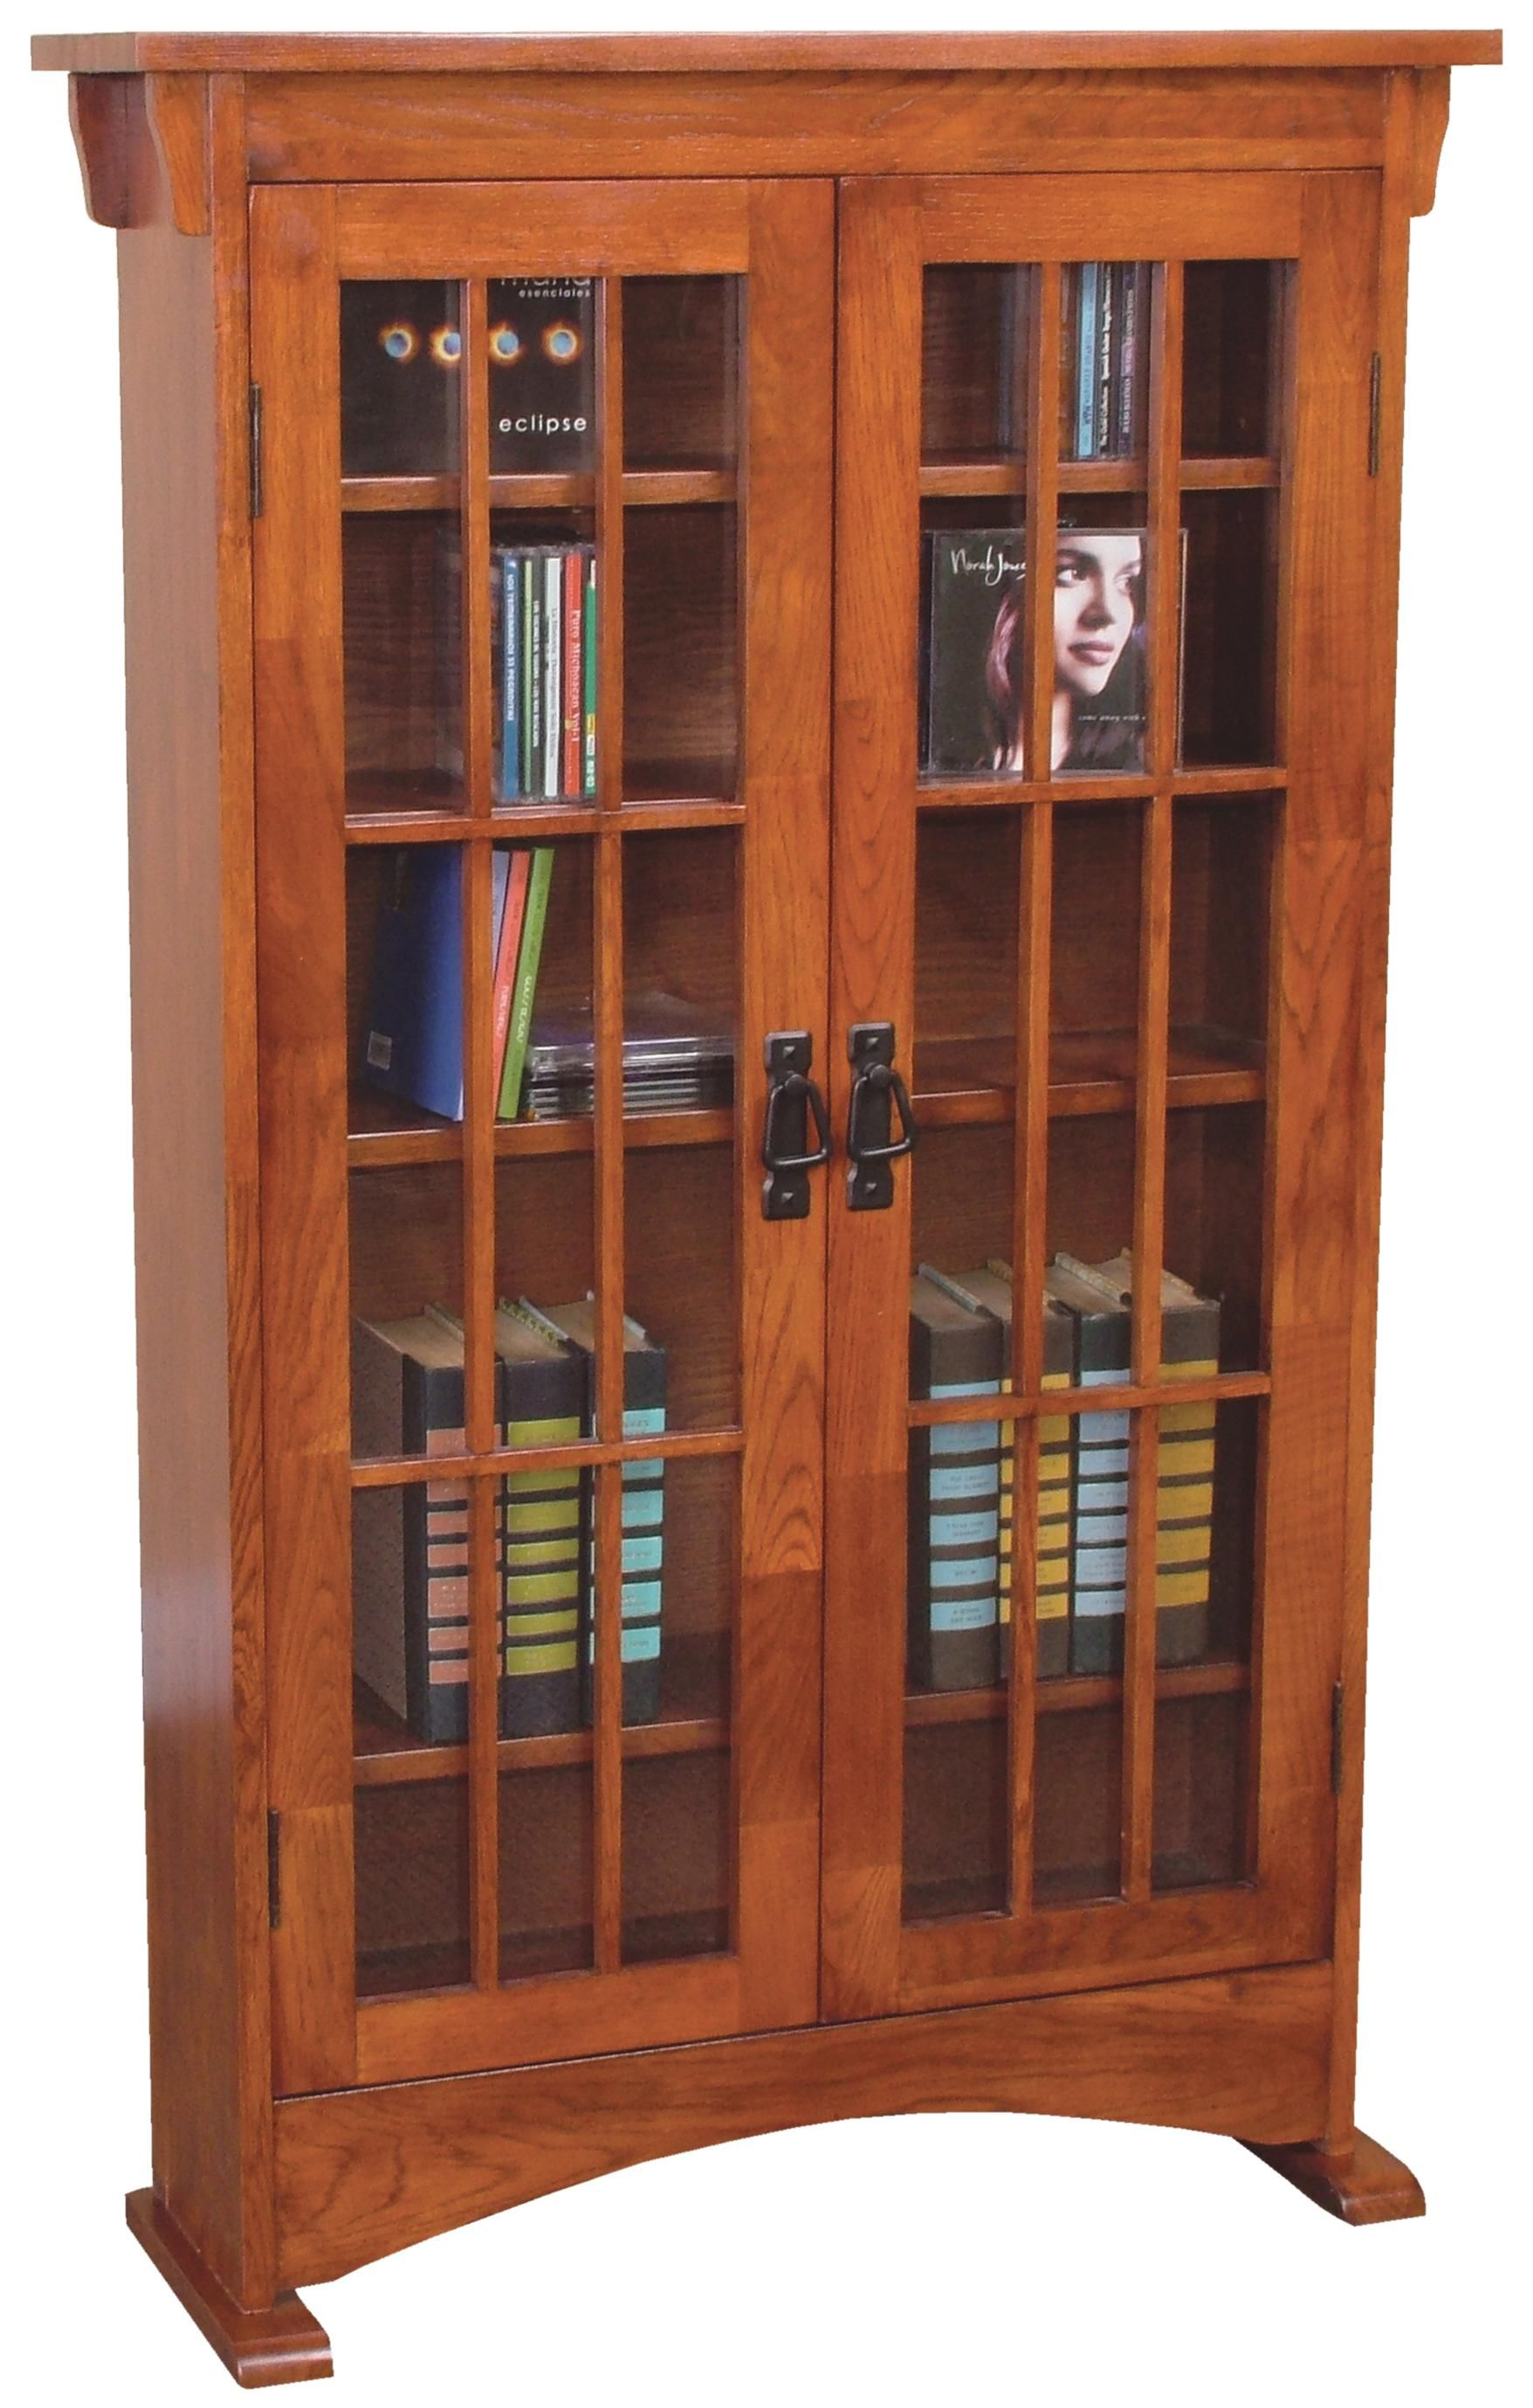 This Mission Inspired Cabinet Makes A Fantastic Storage And Display